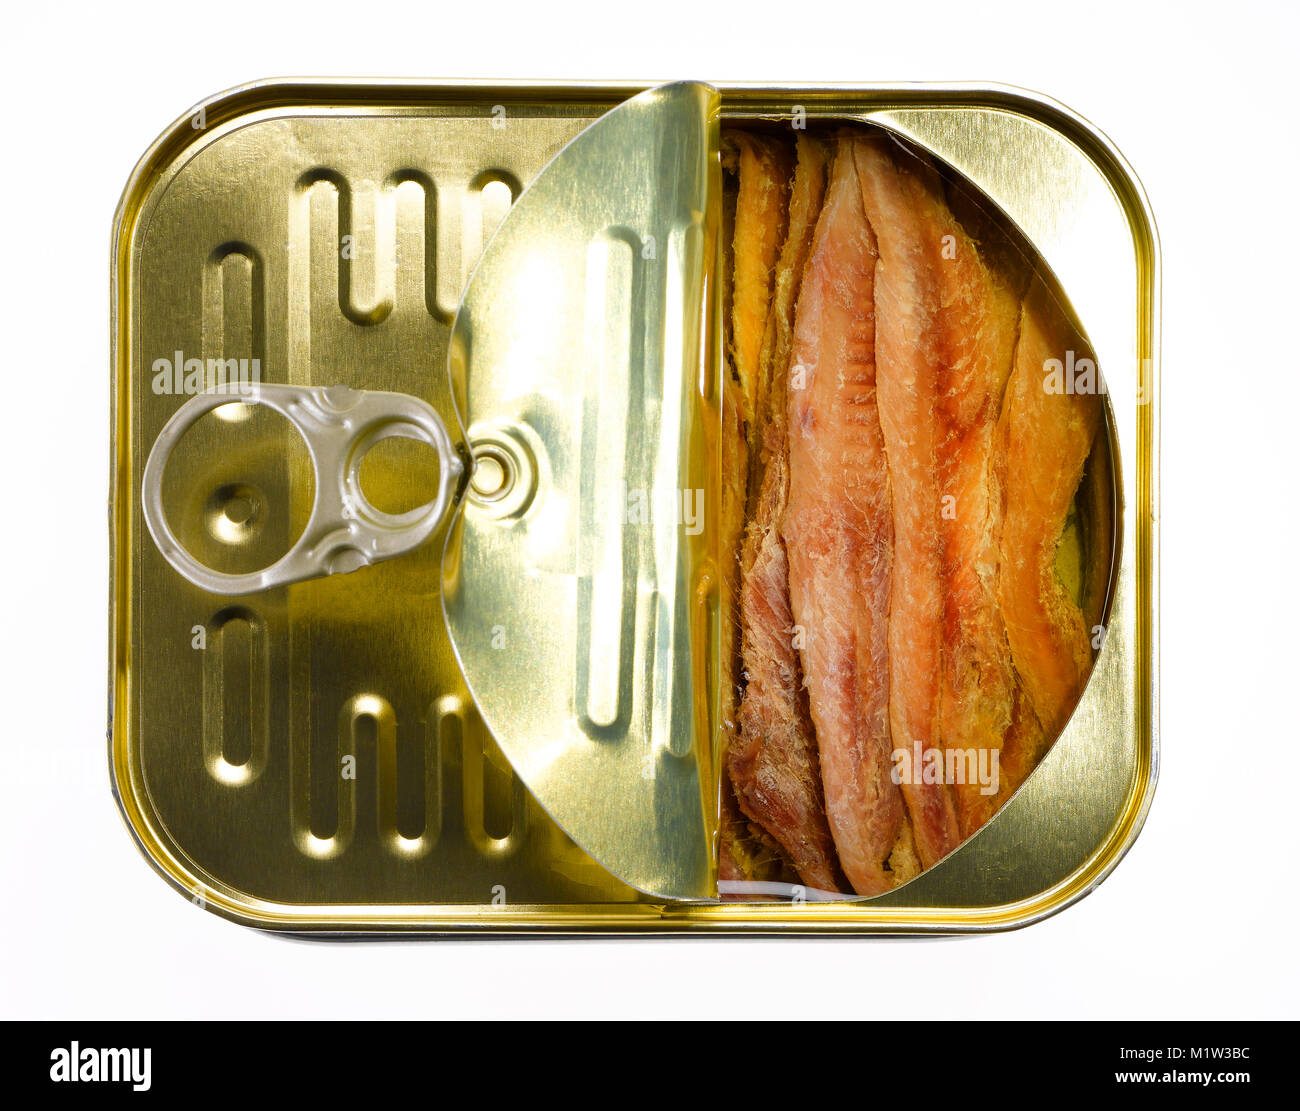 High Angle View of Half-Open Can of Anchovy Fillets against White Background - Stock Image